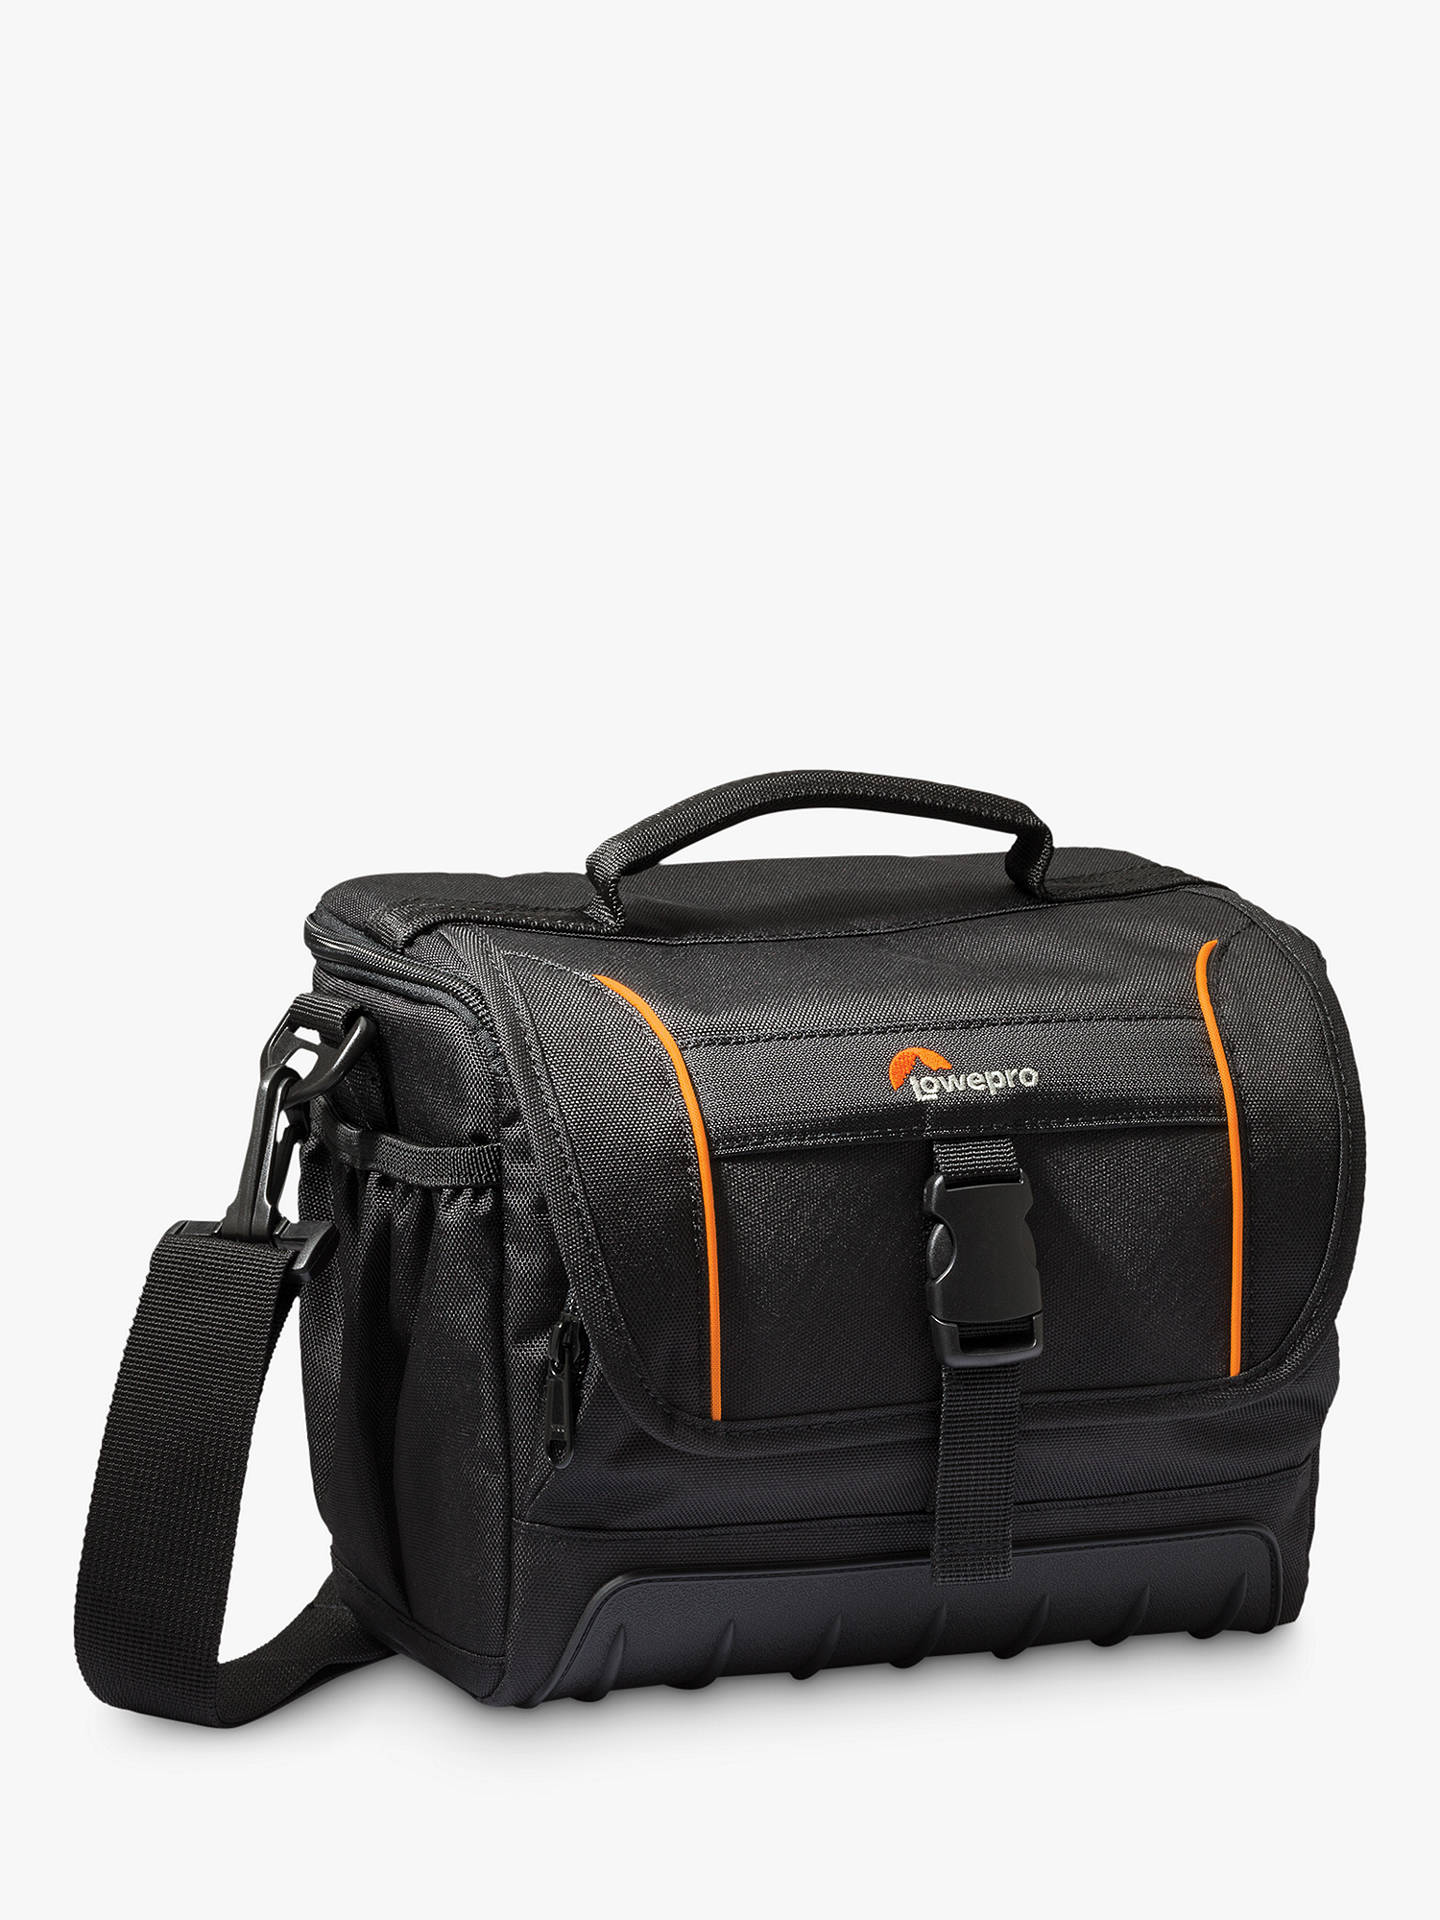 lowepro adventura sh 160 ii shoulder bag black